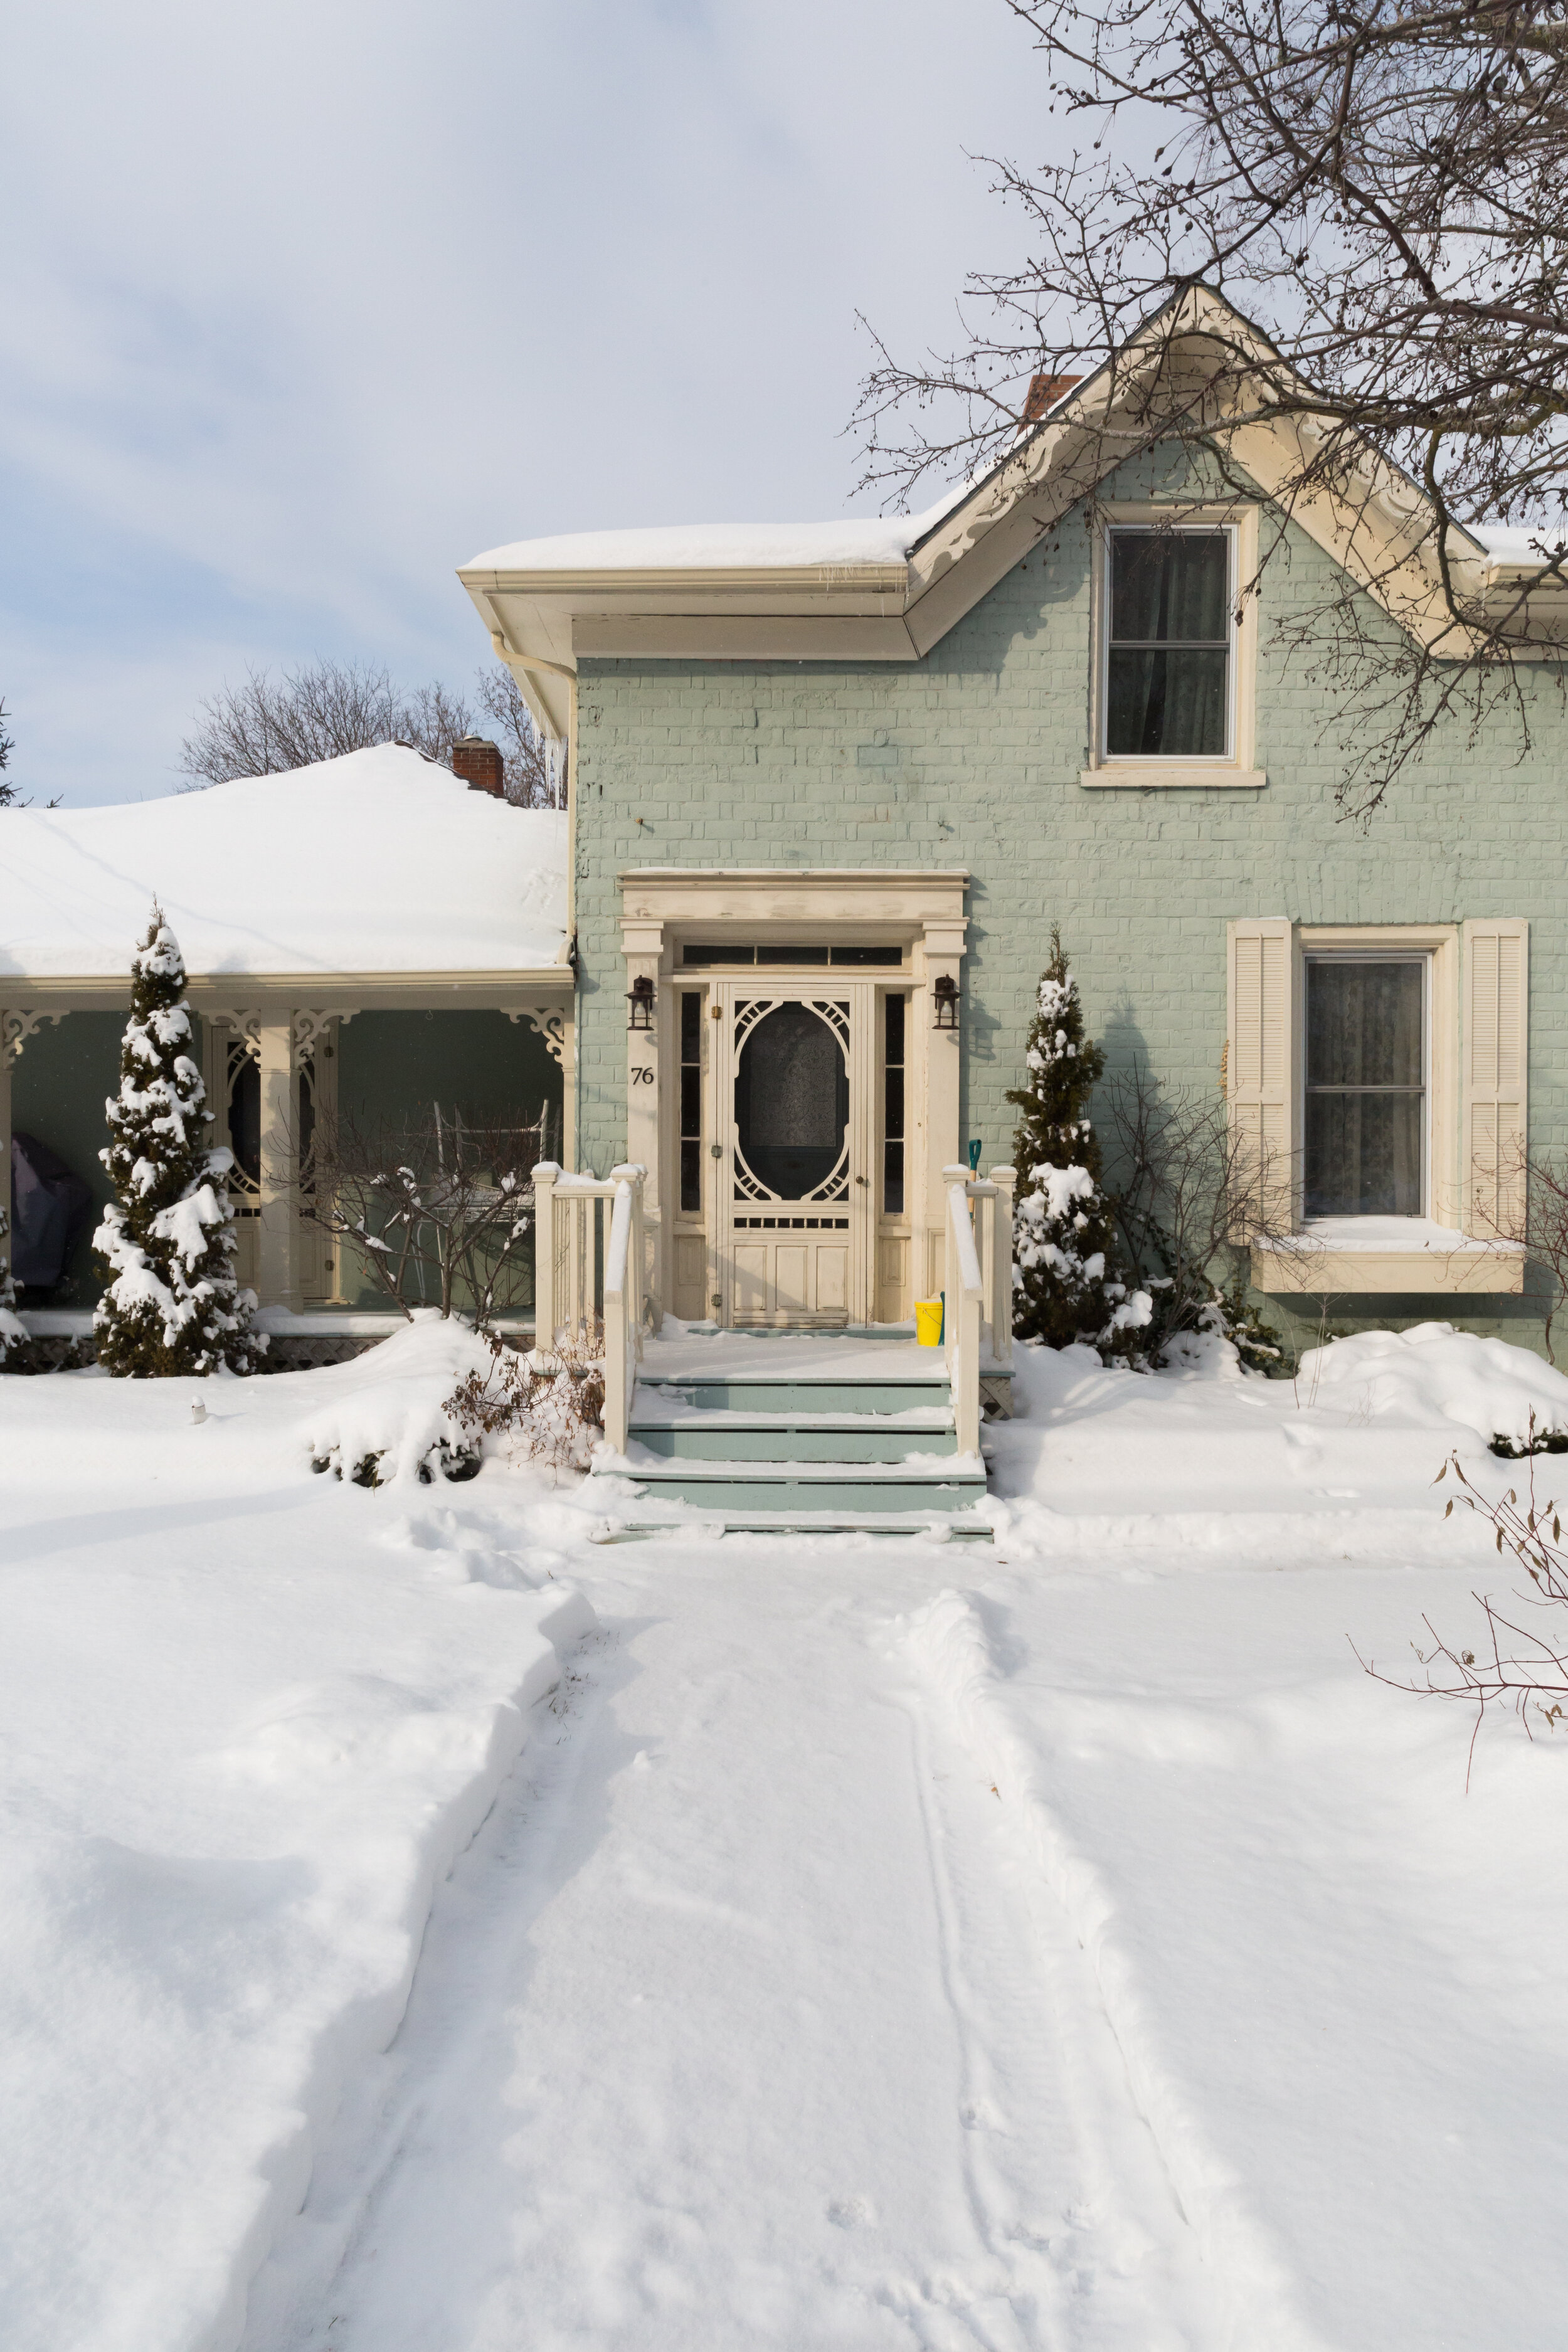 Easy winter access at The Ferg vacation rental Prince Edward County